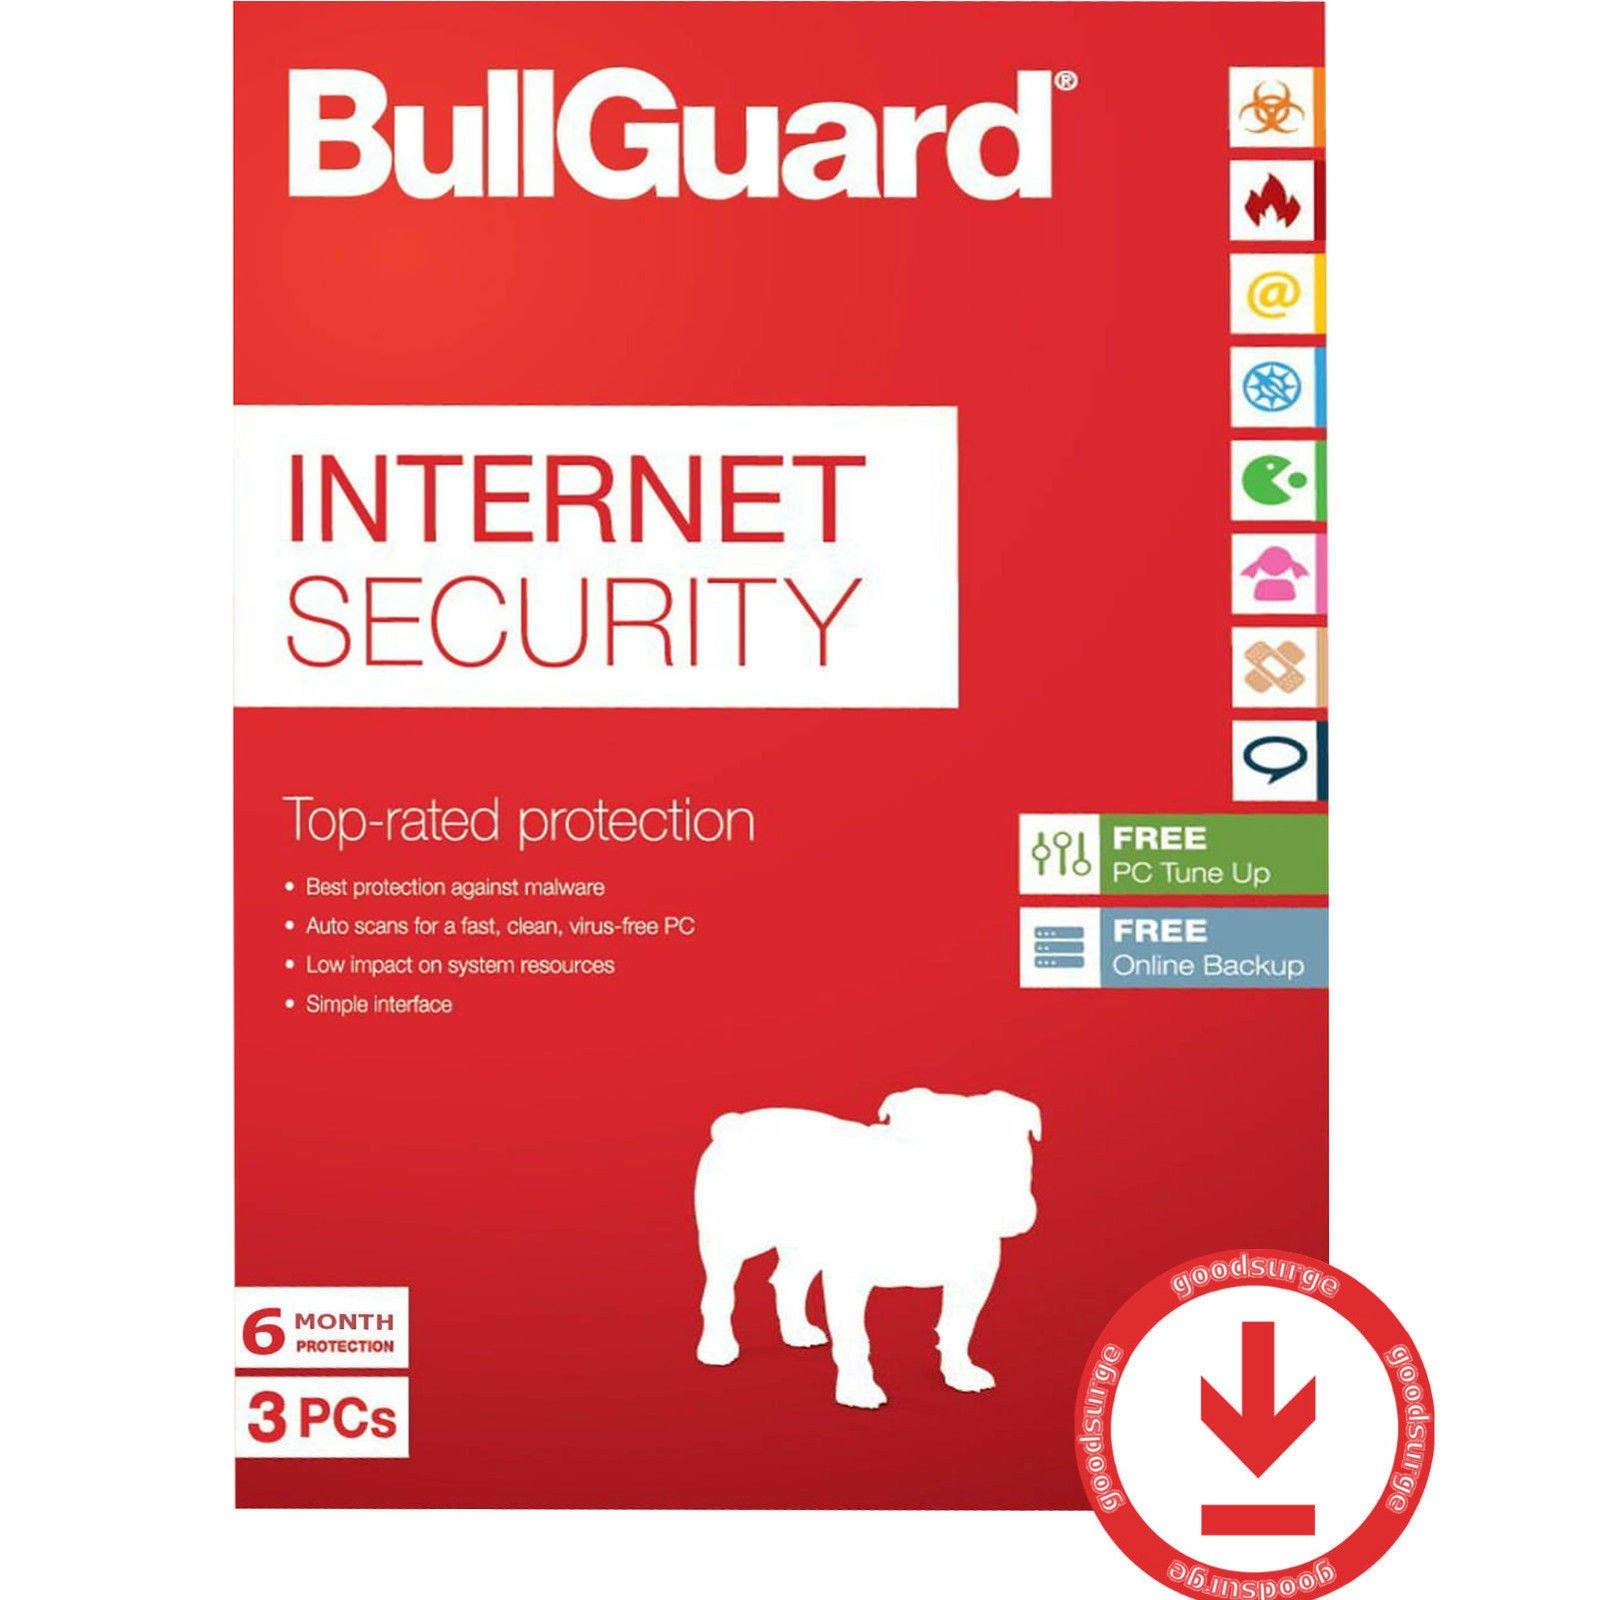 Cheap Antivirus NEW & RENEWAL BullGuard Internet Security - 12 Month LATEST EDITION - InterSecure